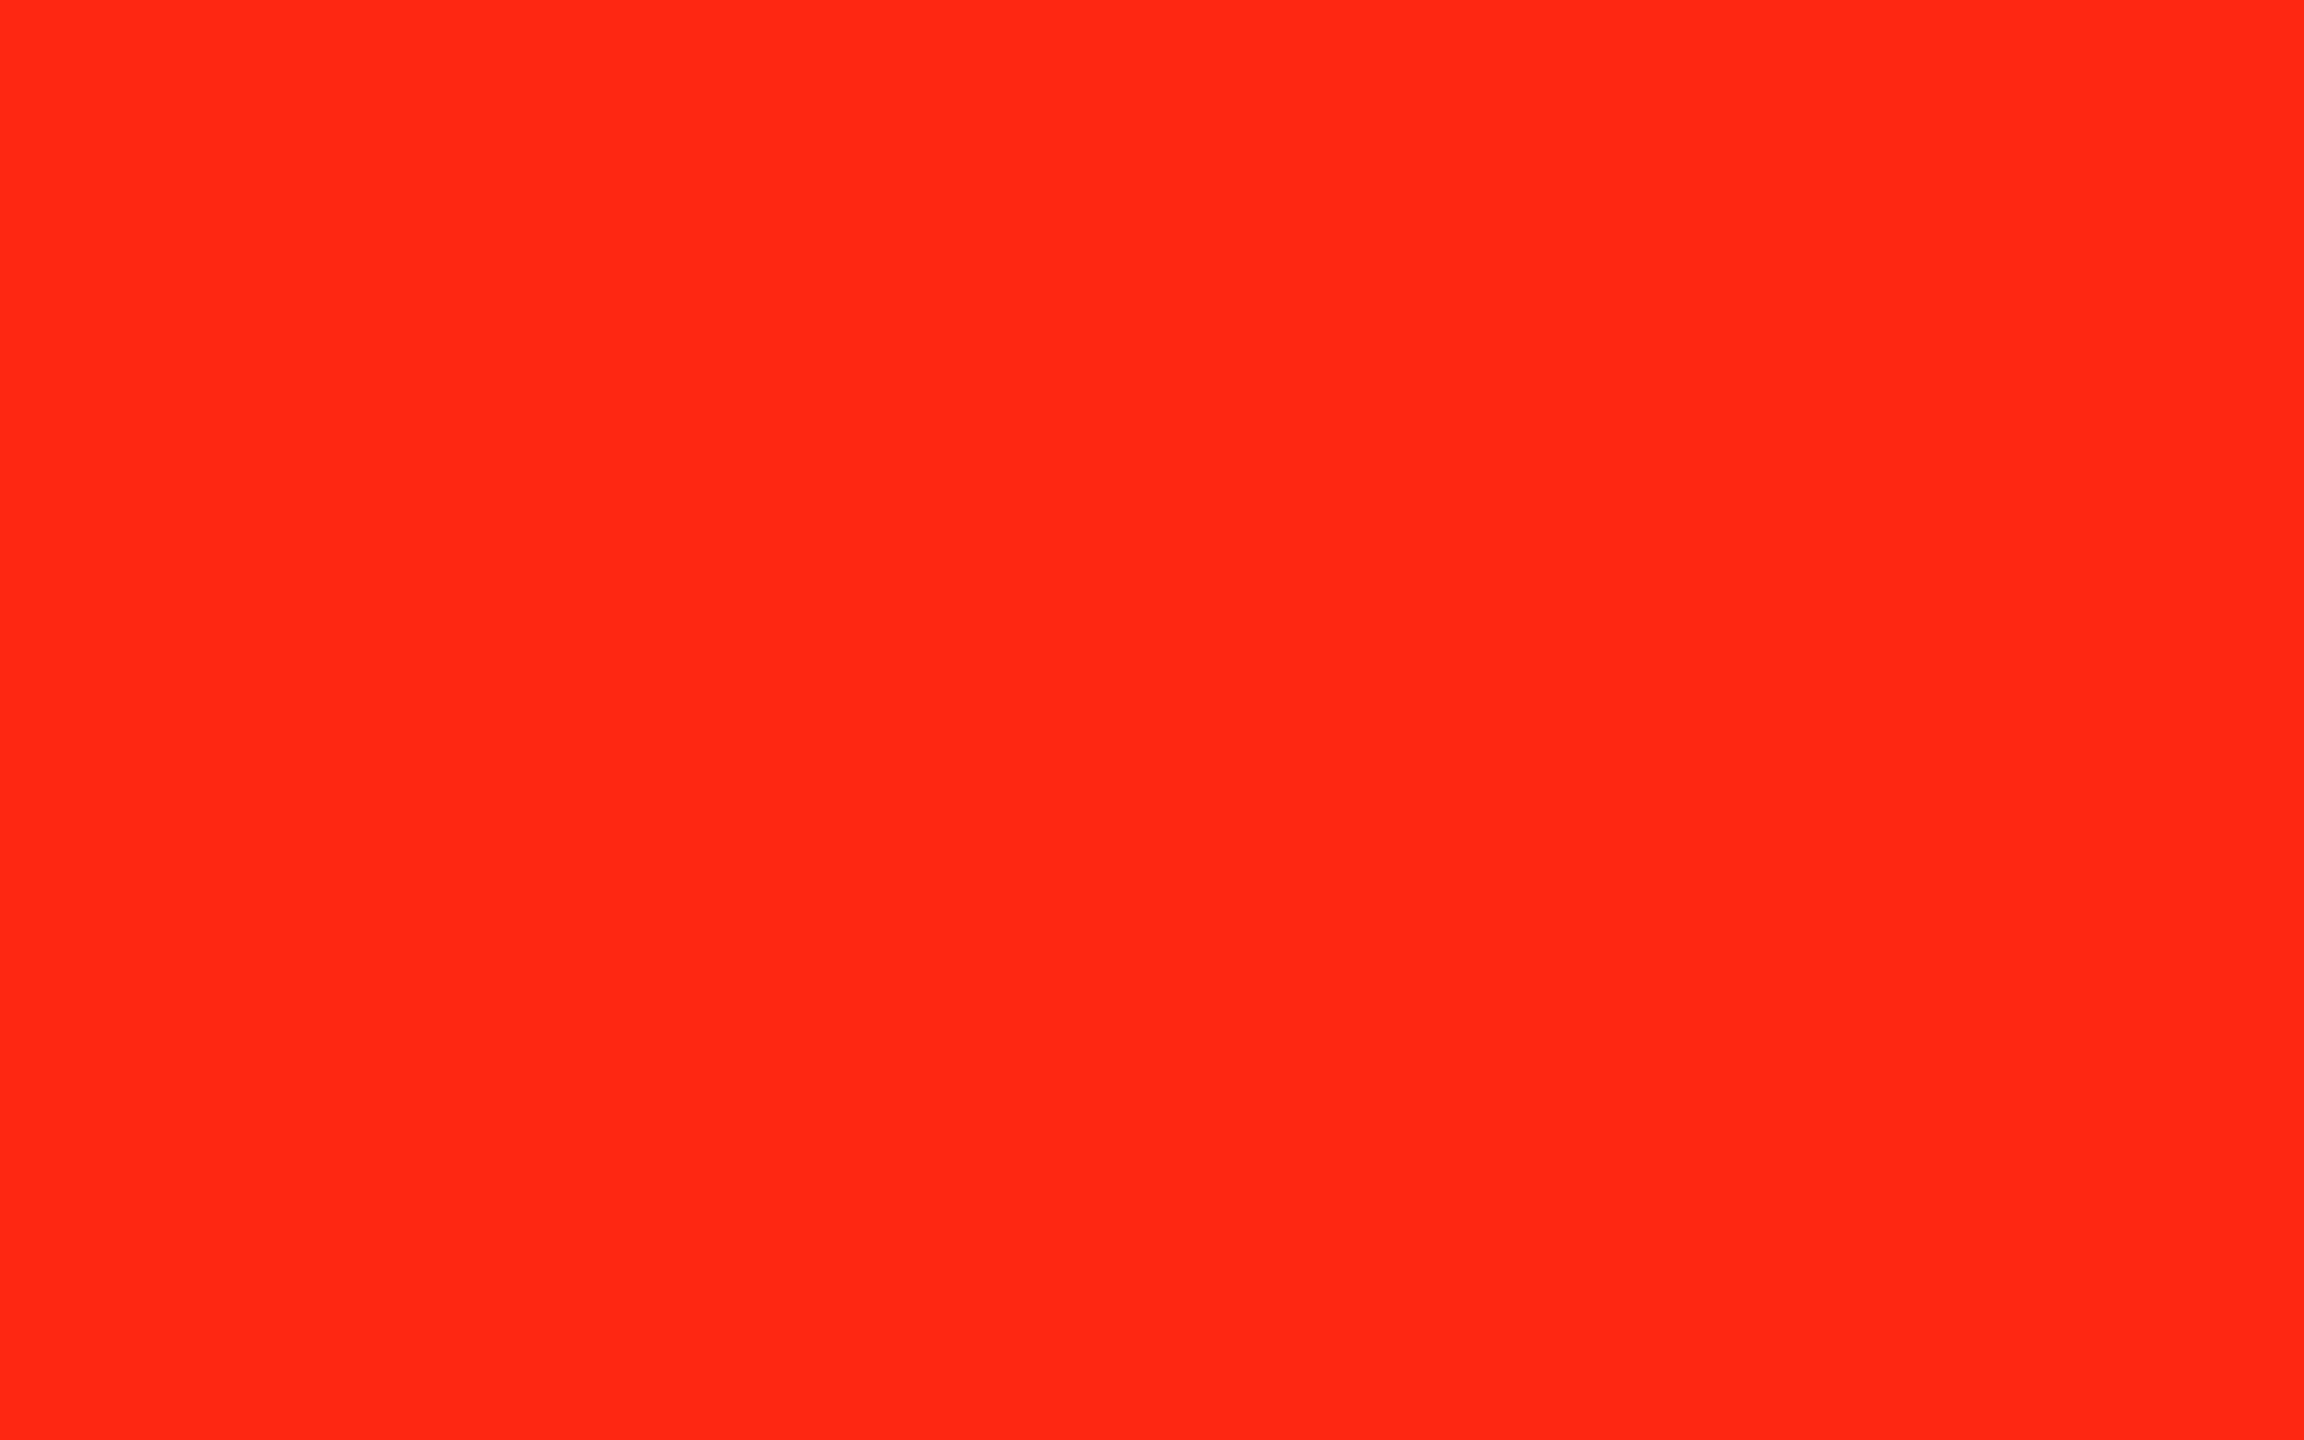 2304x1440 Red RYB Solid Color Background